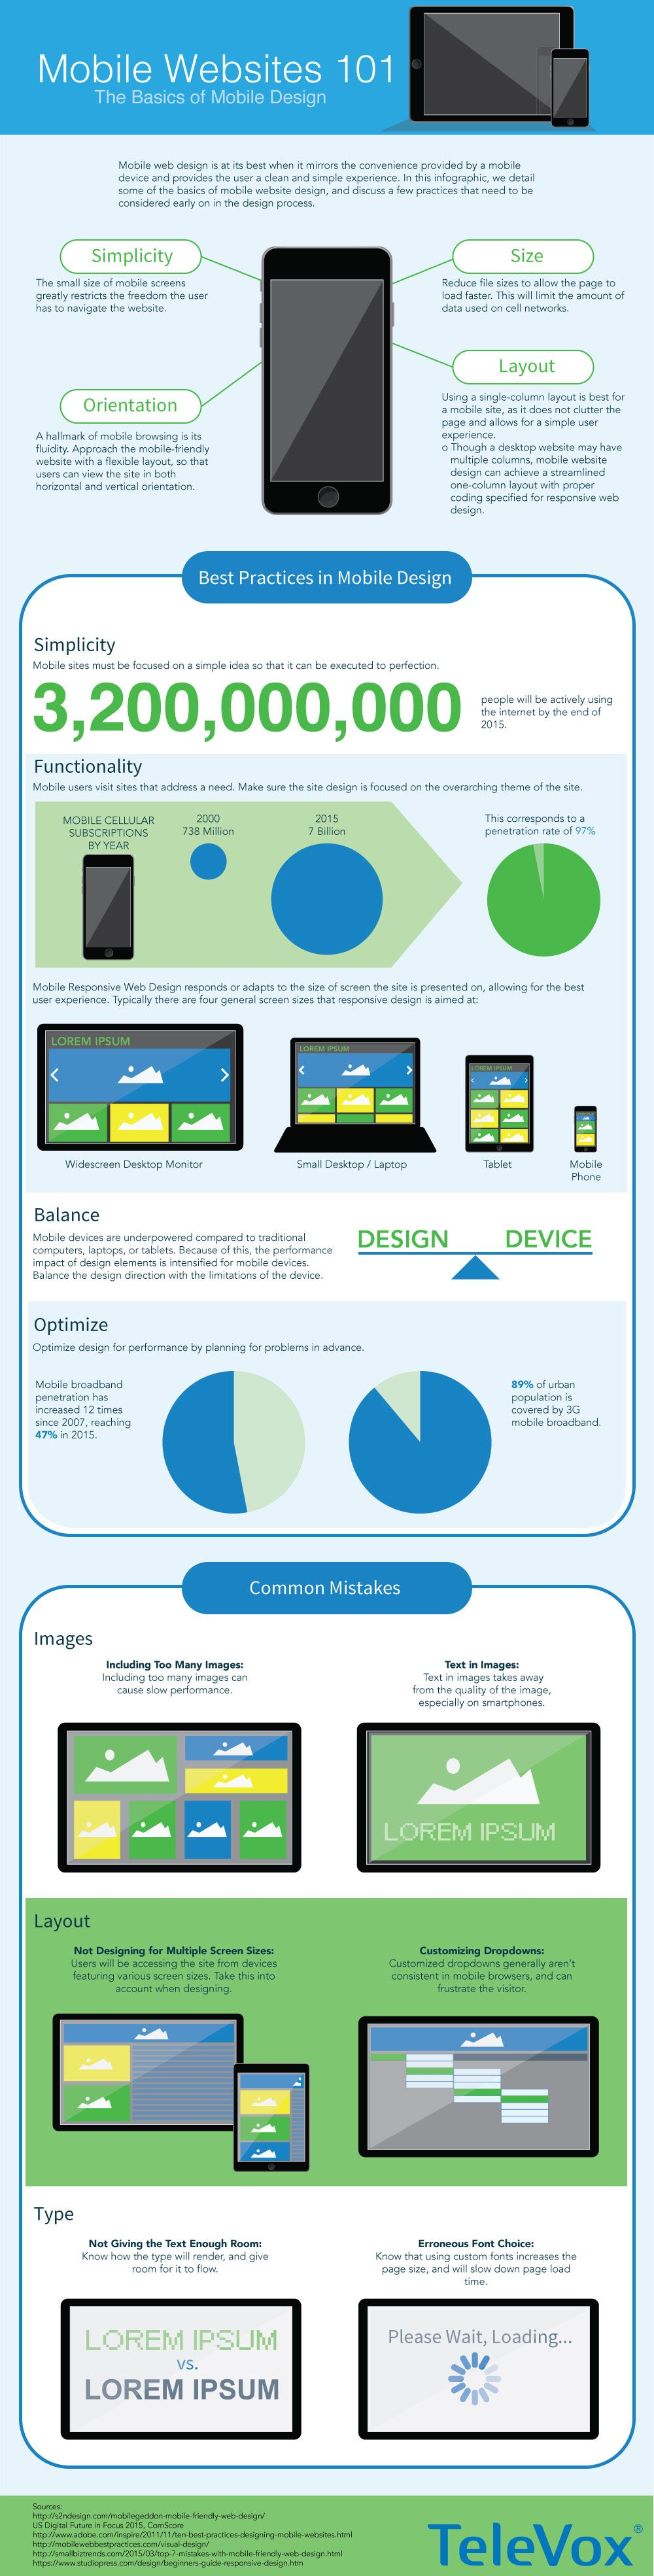 Mobile Website 101 - The Basics of Mobile Design #infographic